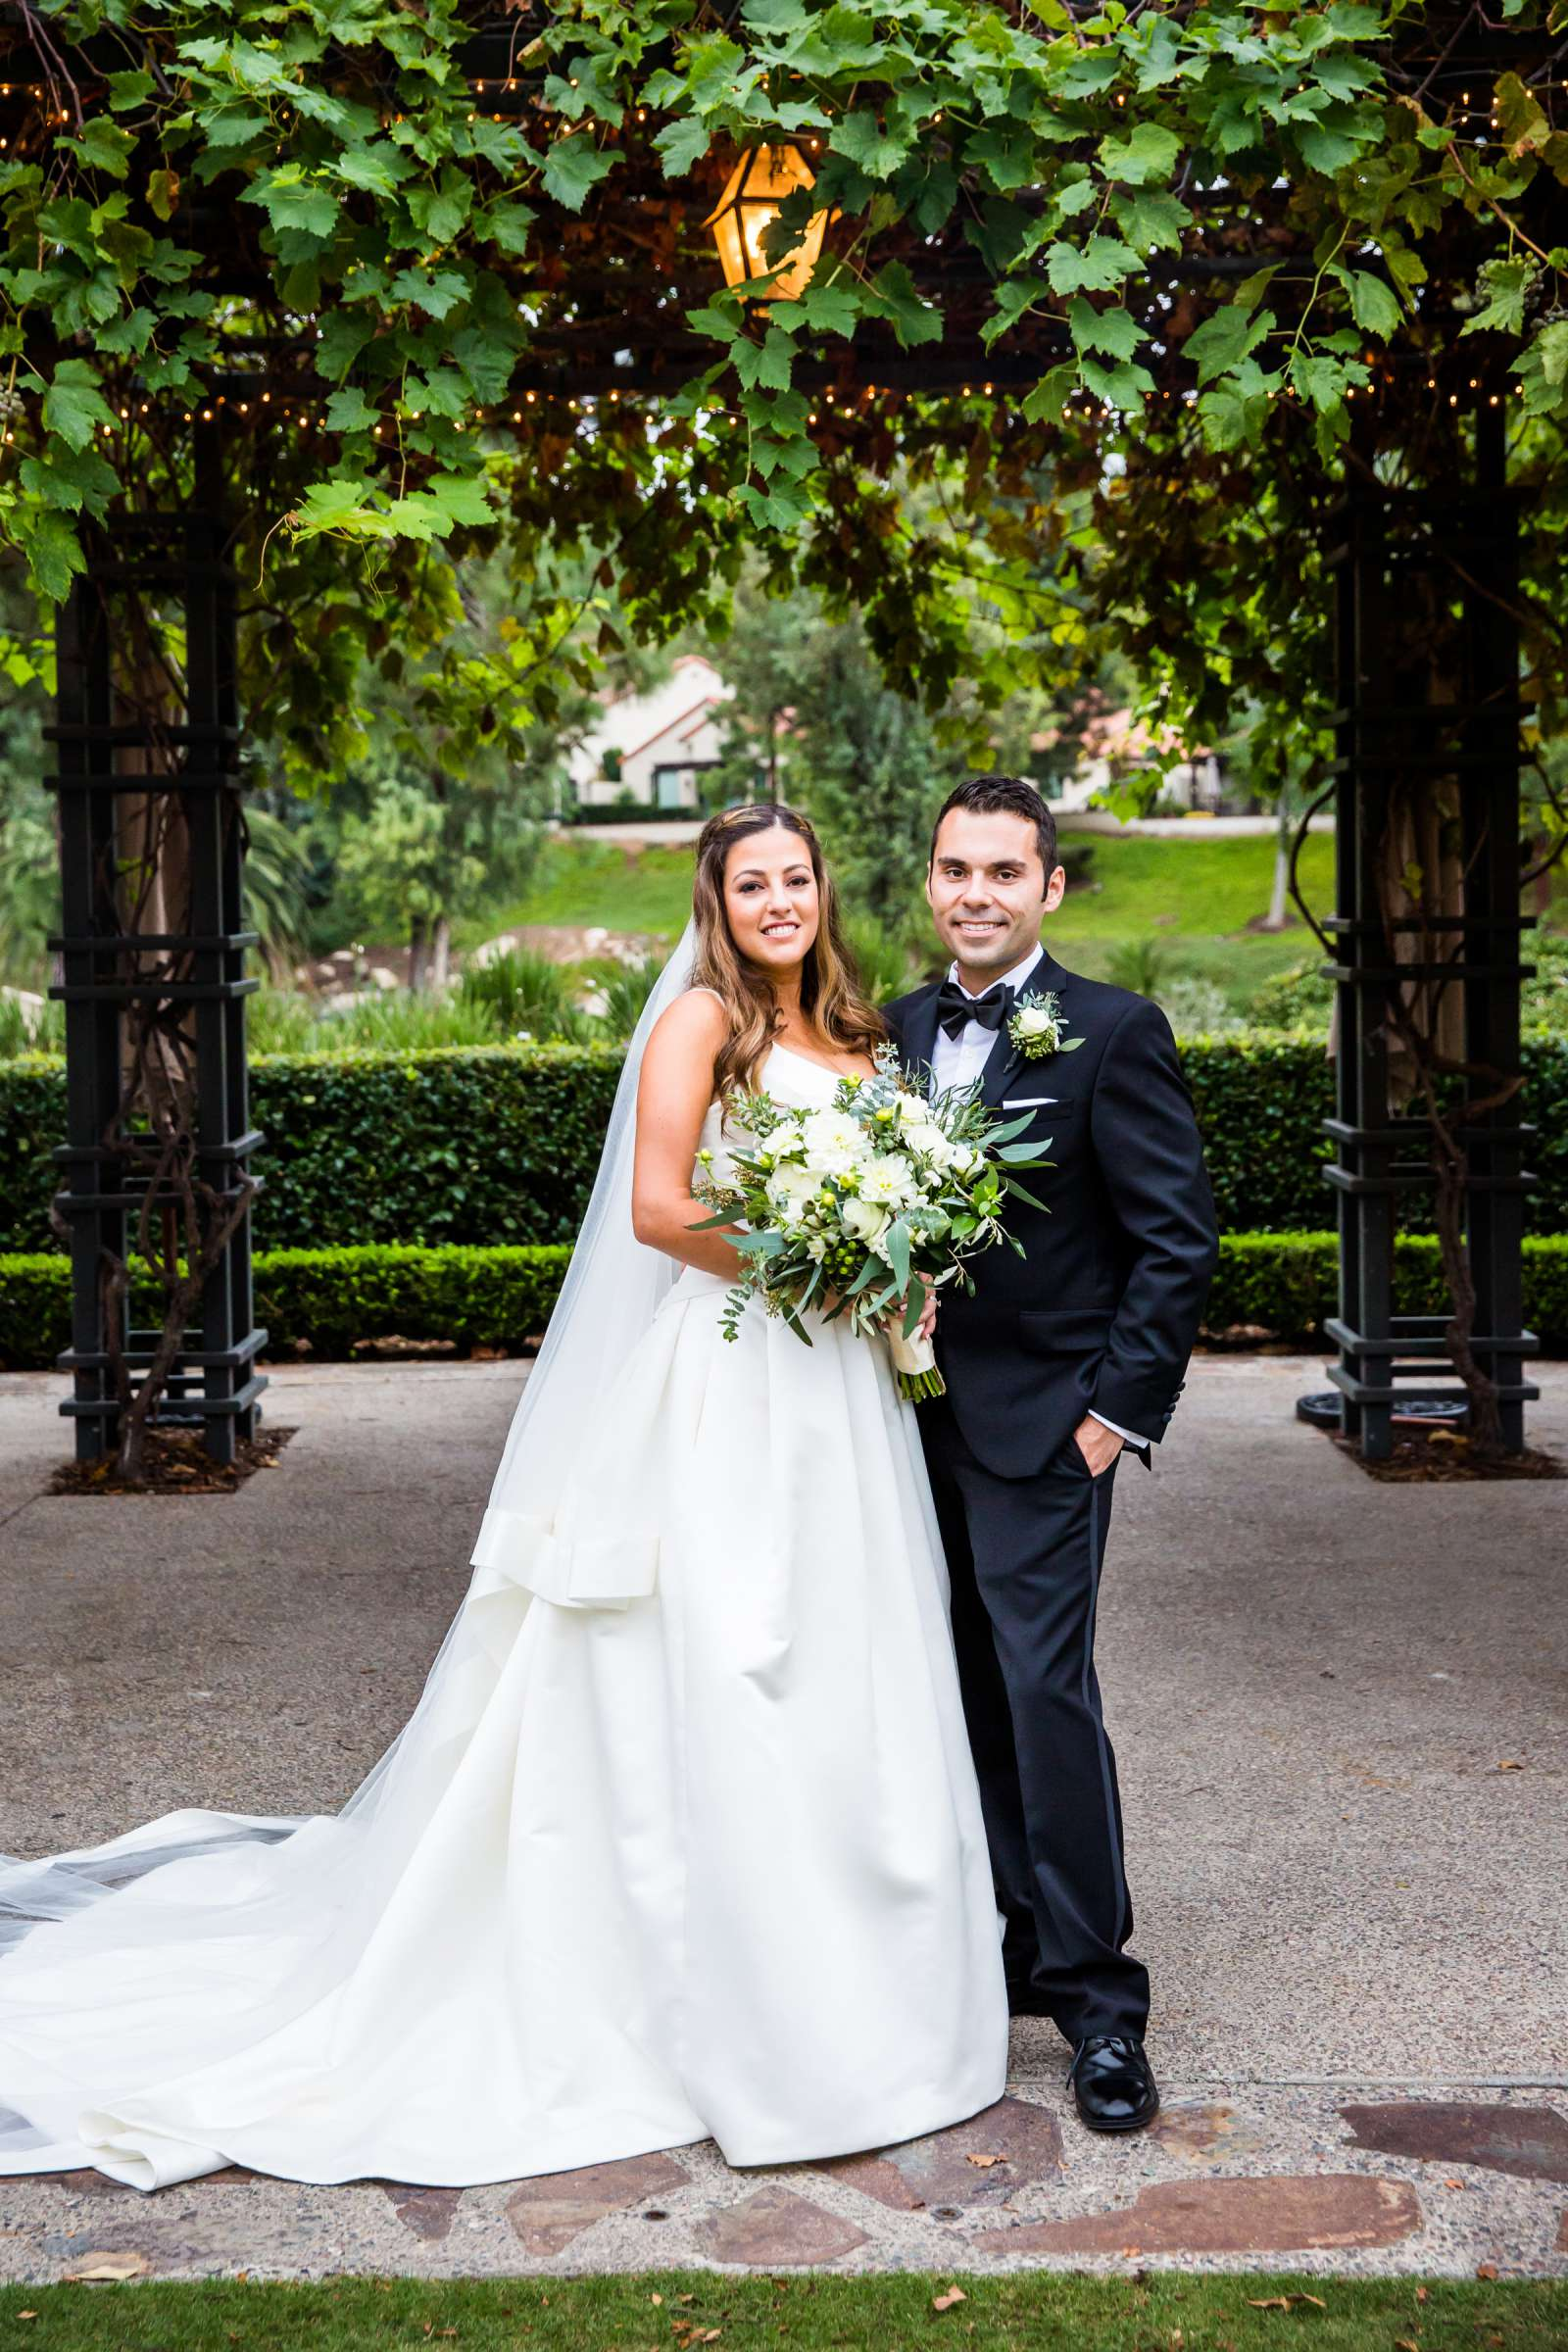 Rancho Bernardo Inn Wedding coordinated by Très Chic Events, Stefania and Nicholas Wedding Photo #55 by True Photography